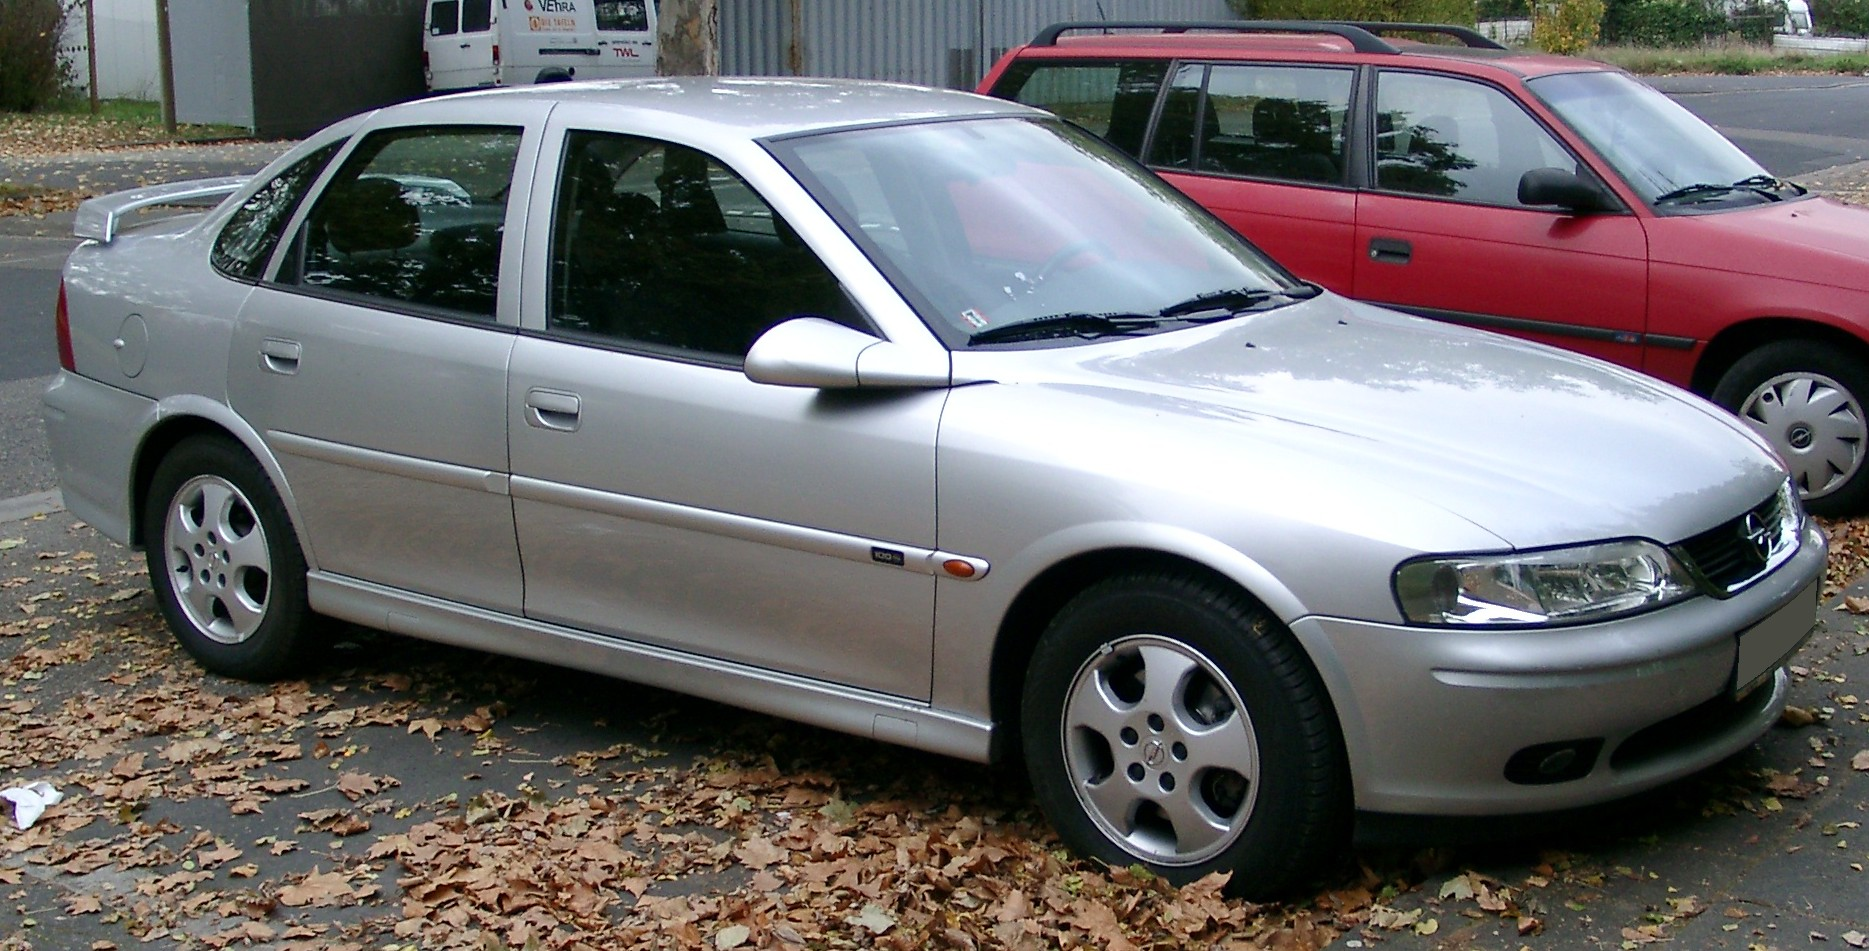 File:Opel Vectra front 20071025.jpg - Wikimedia Commons